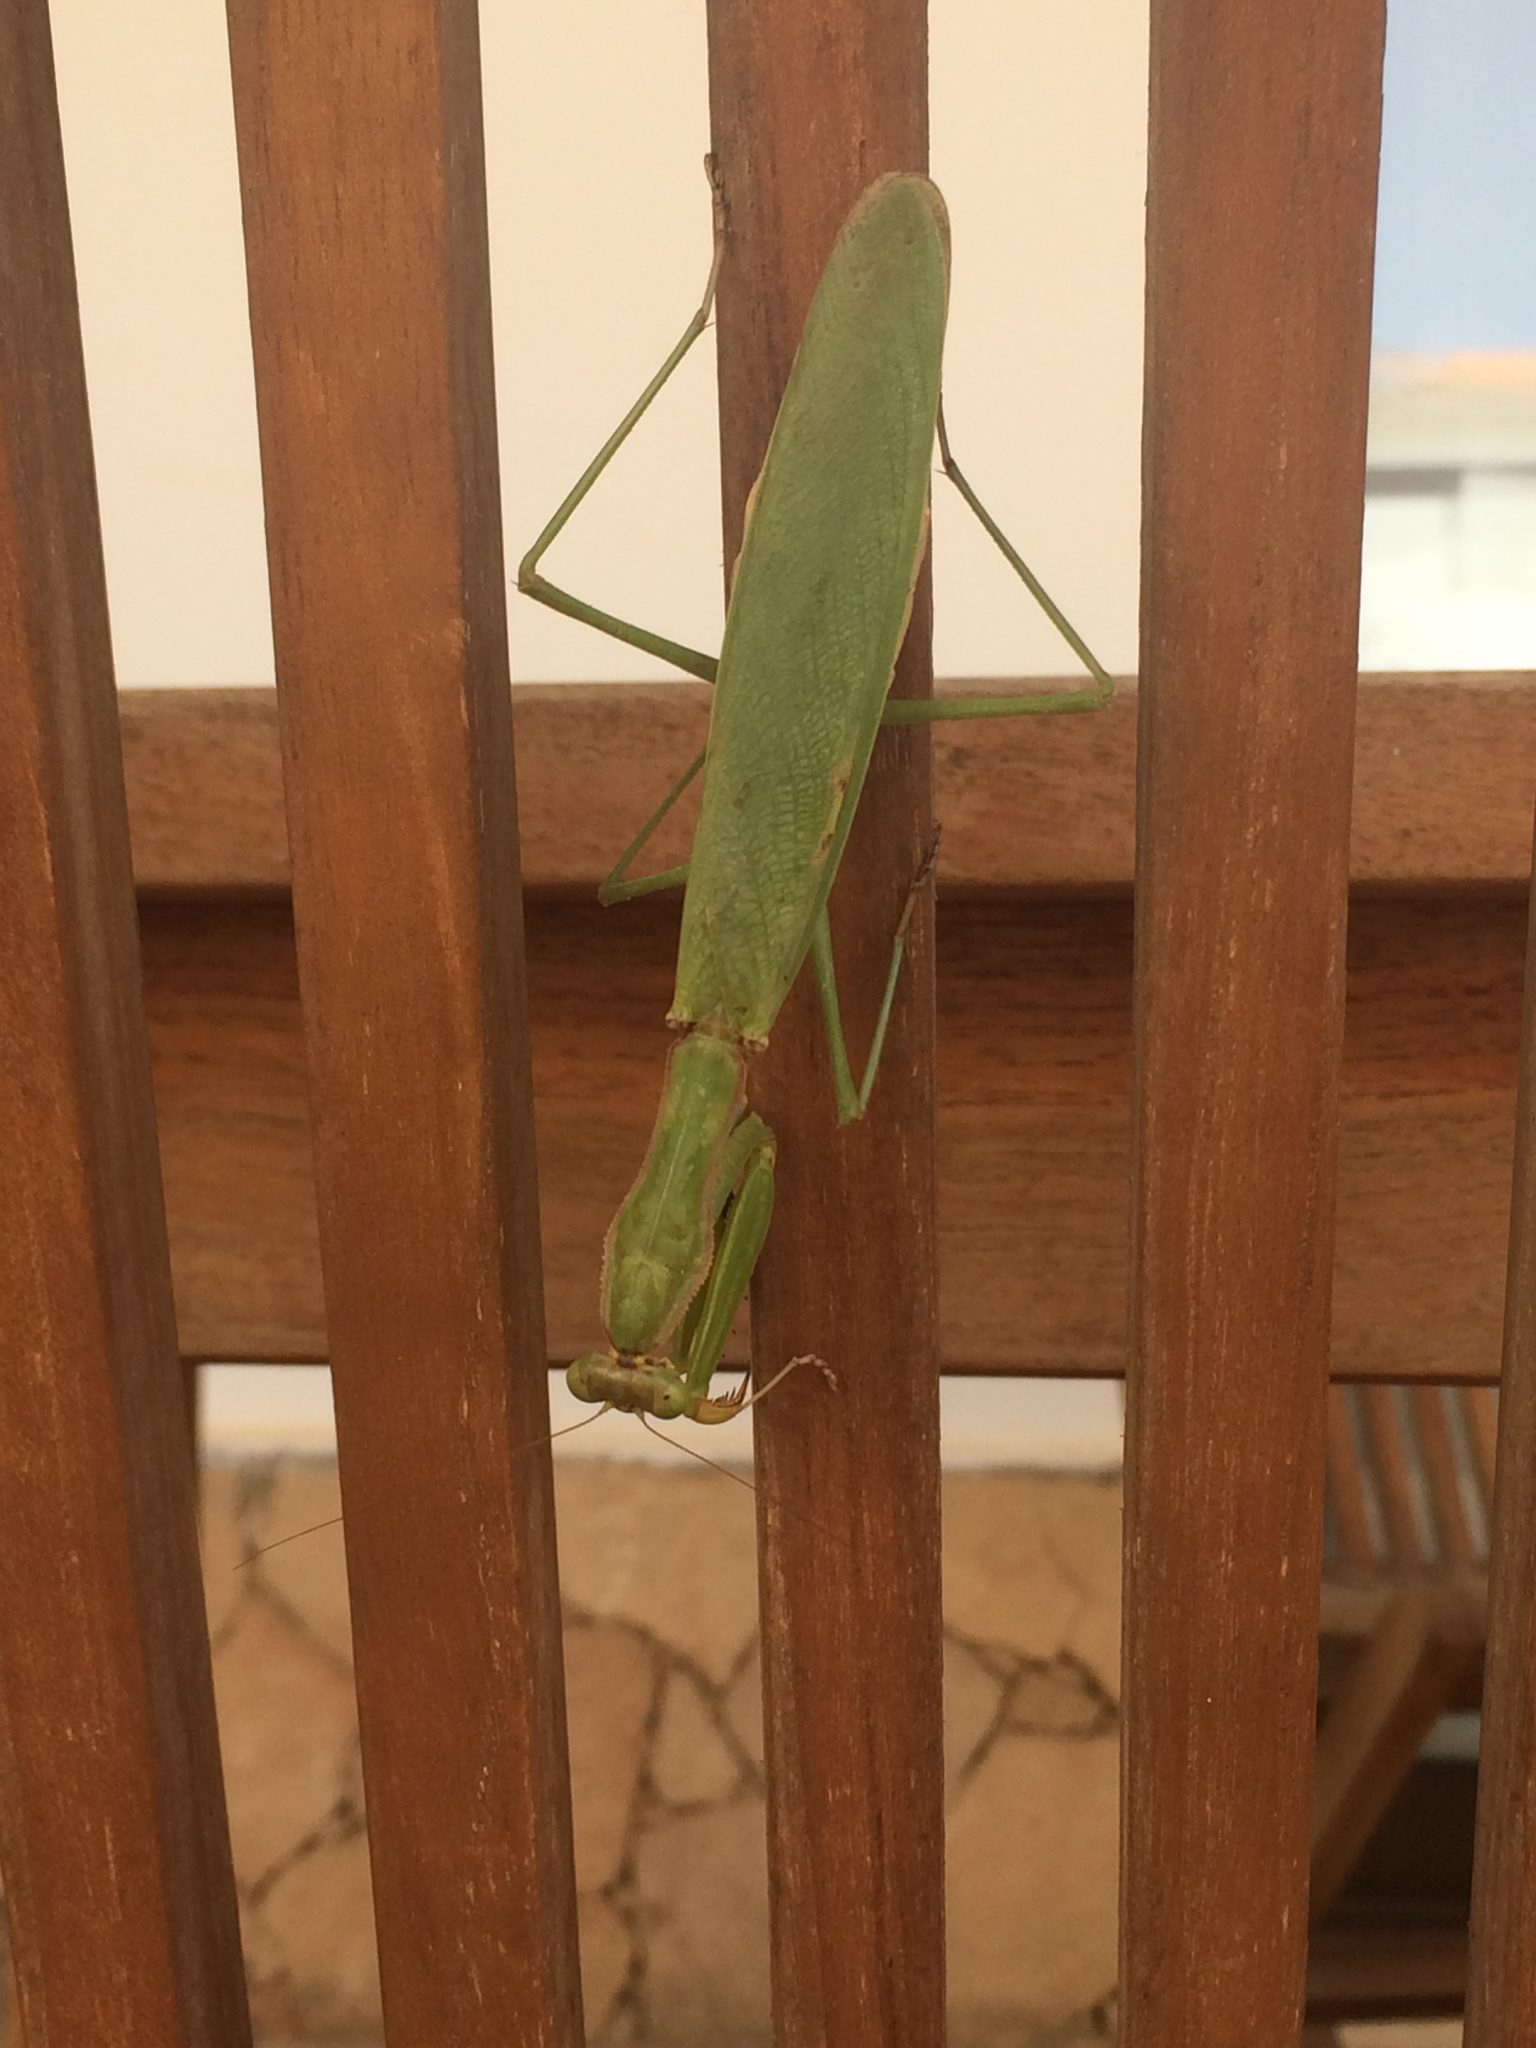 Praying mantis, Sal Island, Cape Verde